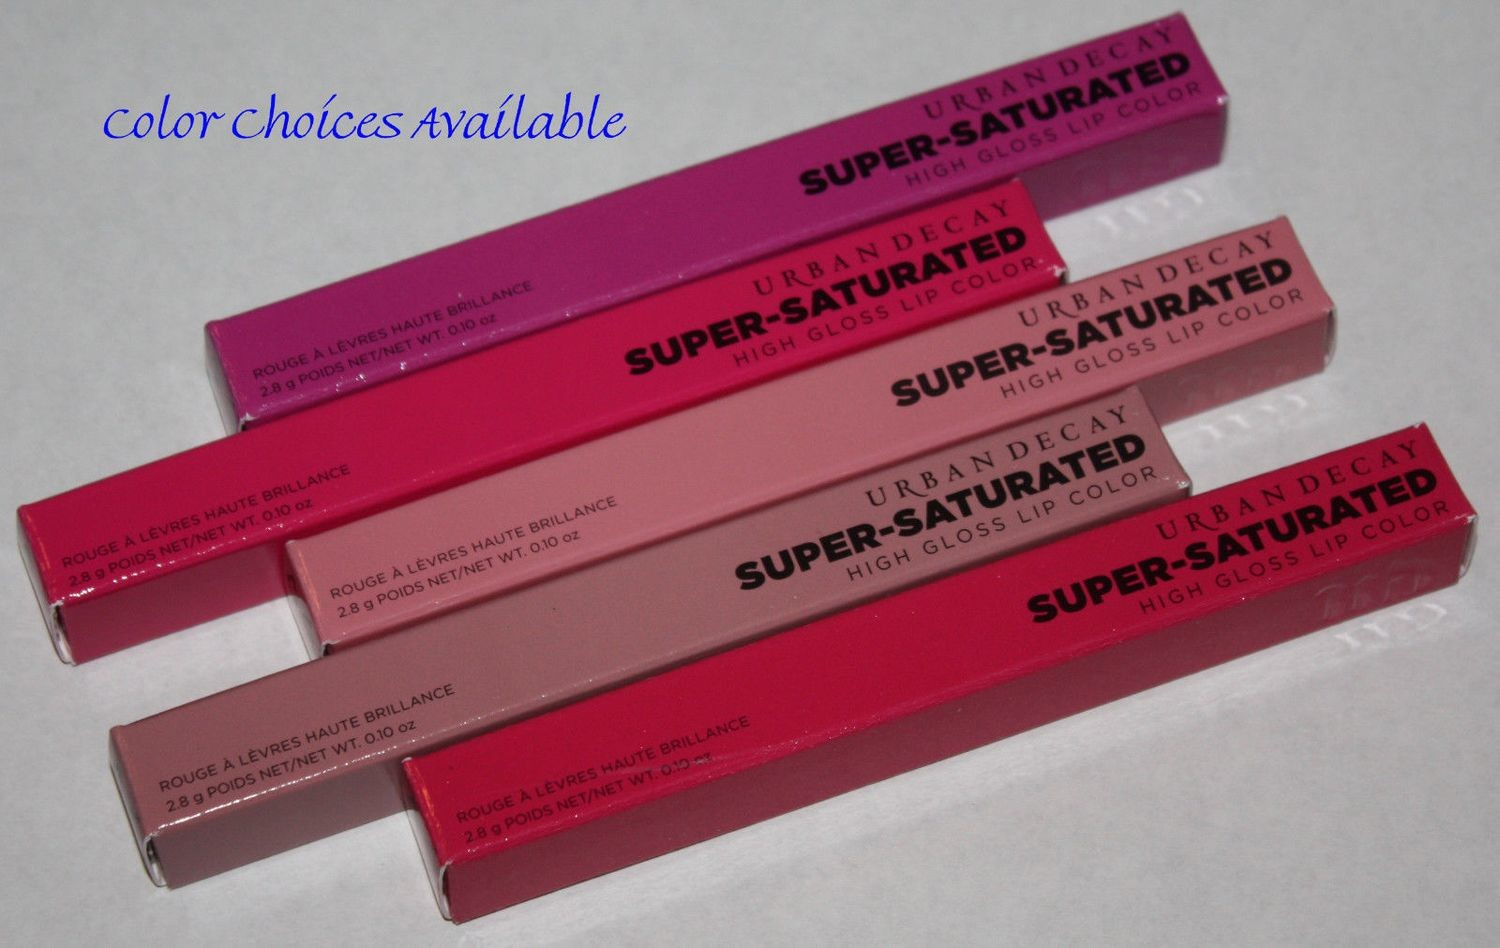 Urban Decay Super-Saturated High Gloss Lip Color 0.10 oz